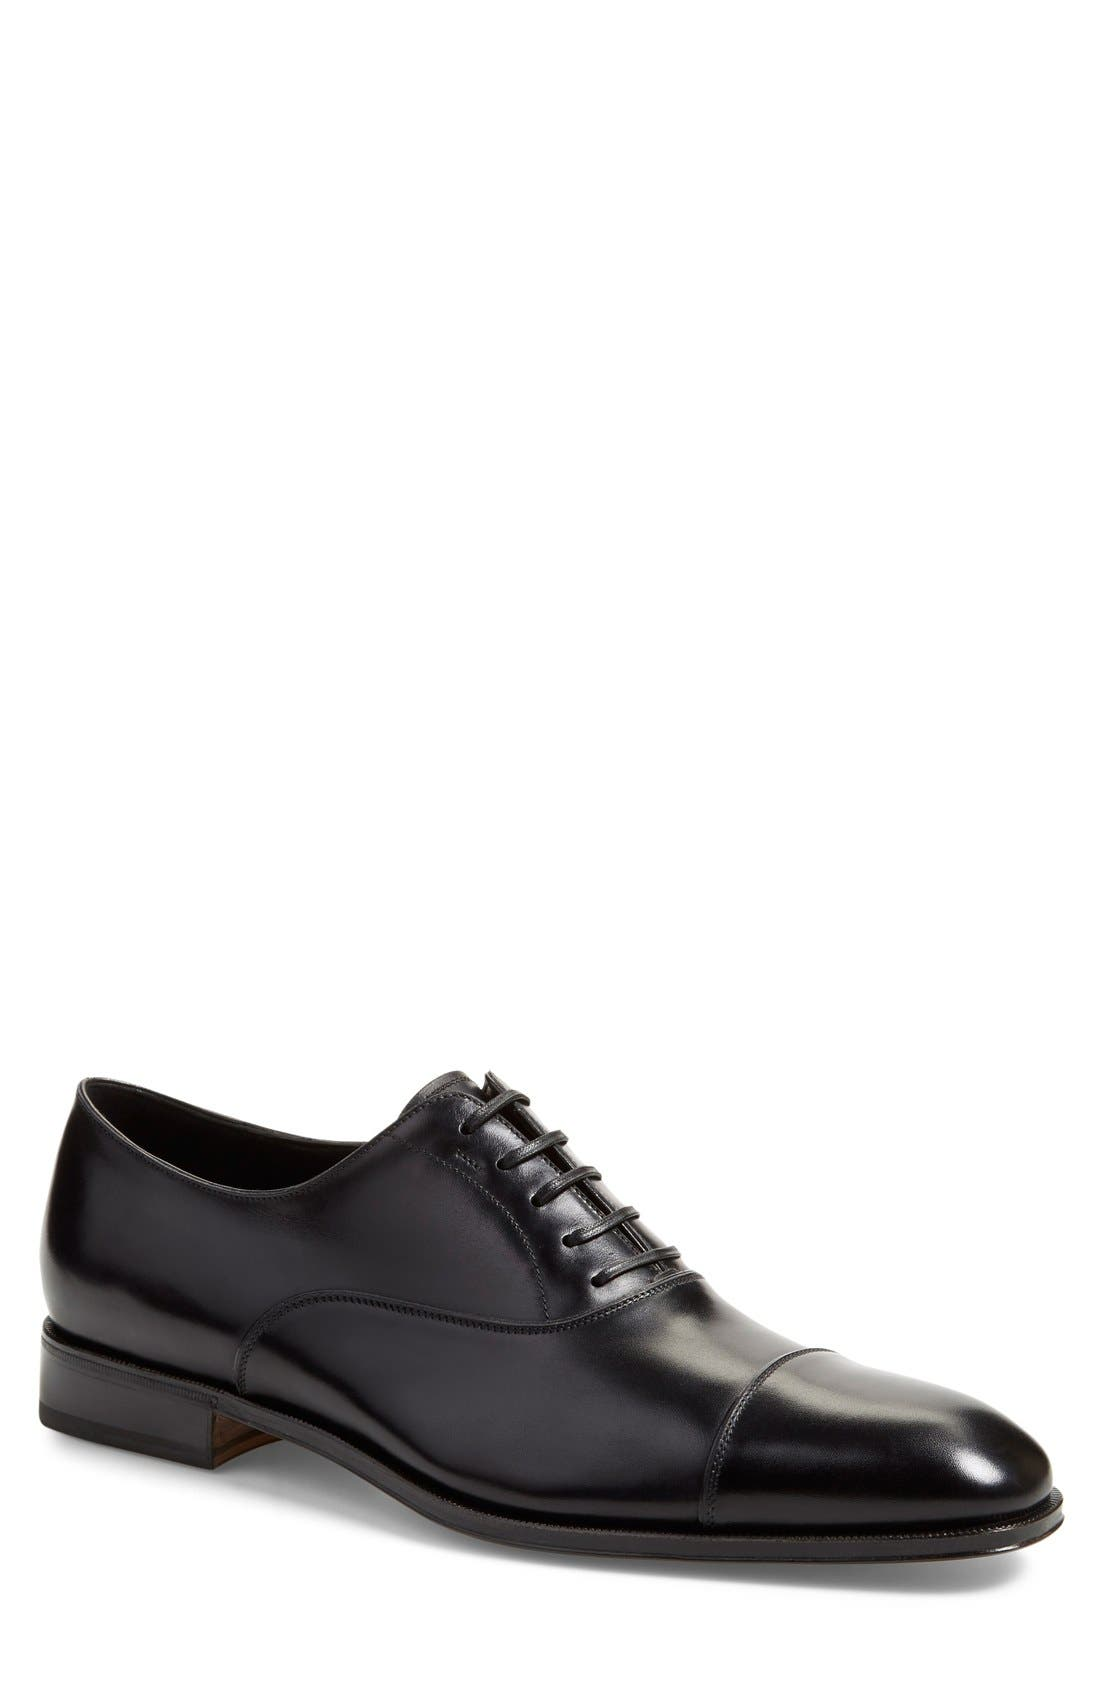 Salvatore Ferragamo 'Luce' Cap Toe Oxford